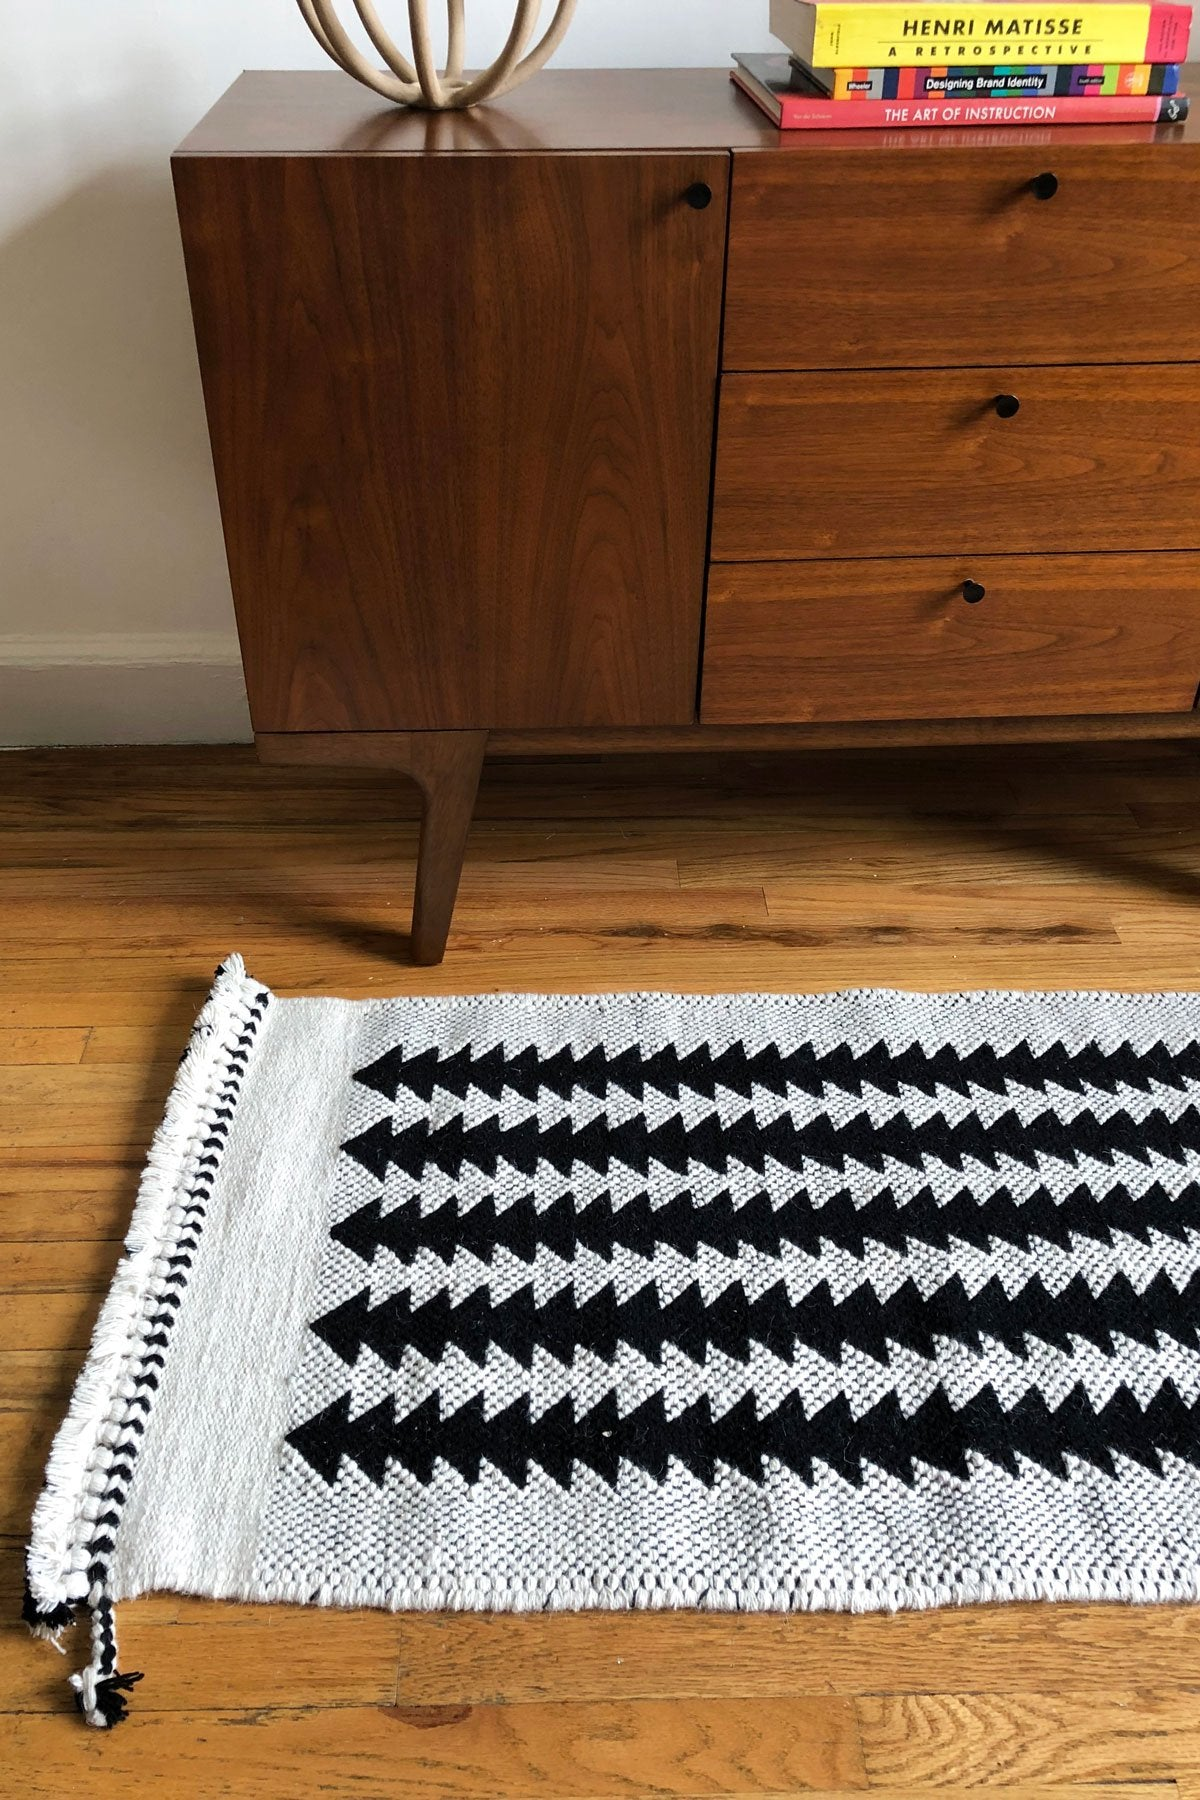 Black and white neutral wool runner rug. Handwoven with undyed wool. Perfect for next to a bed or in front of a dresser.